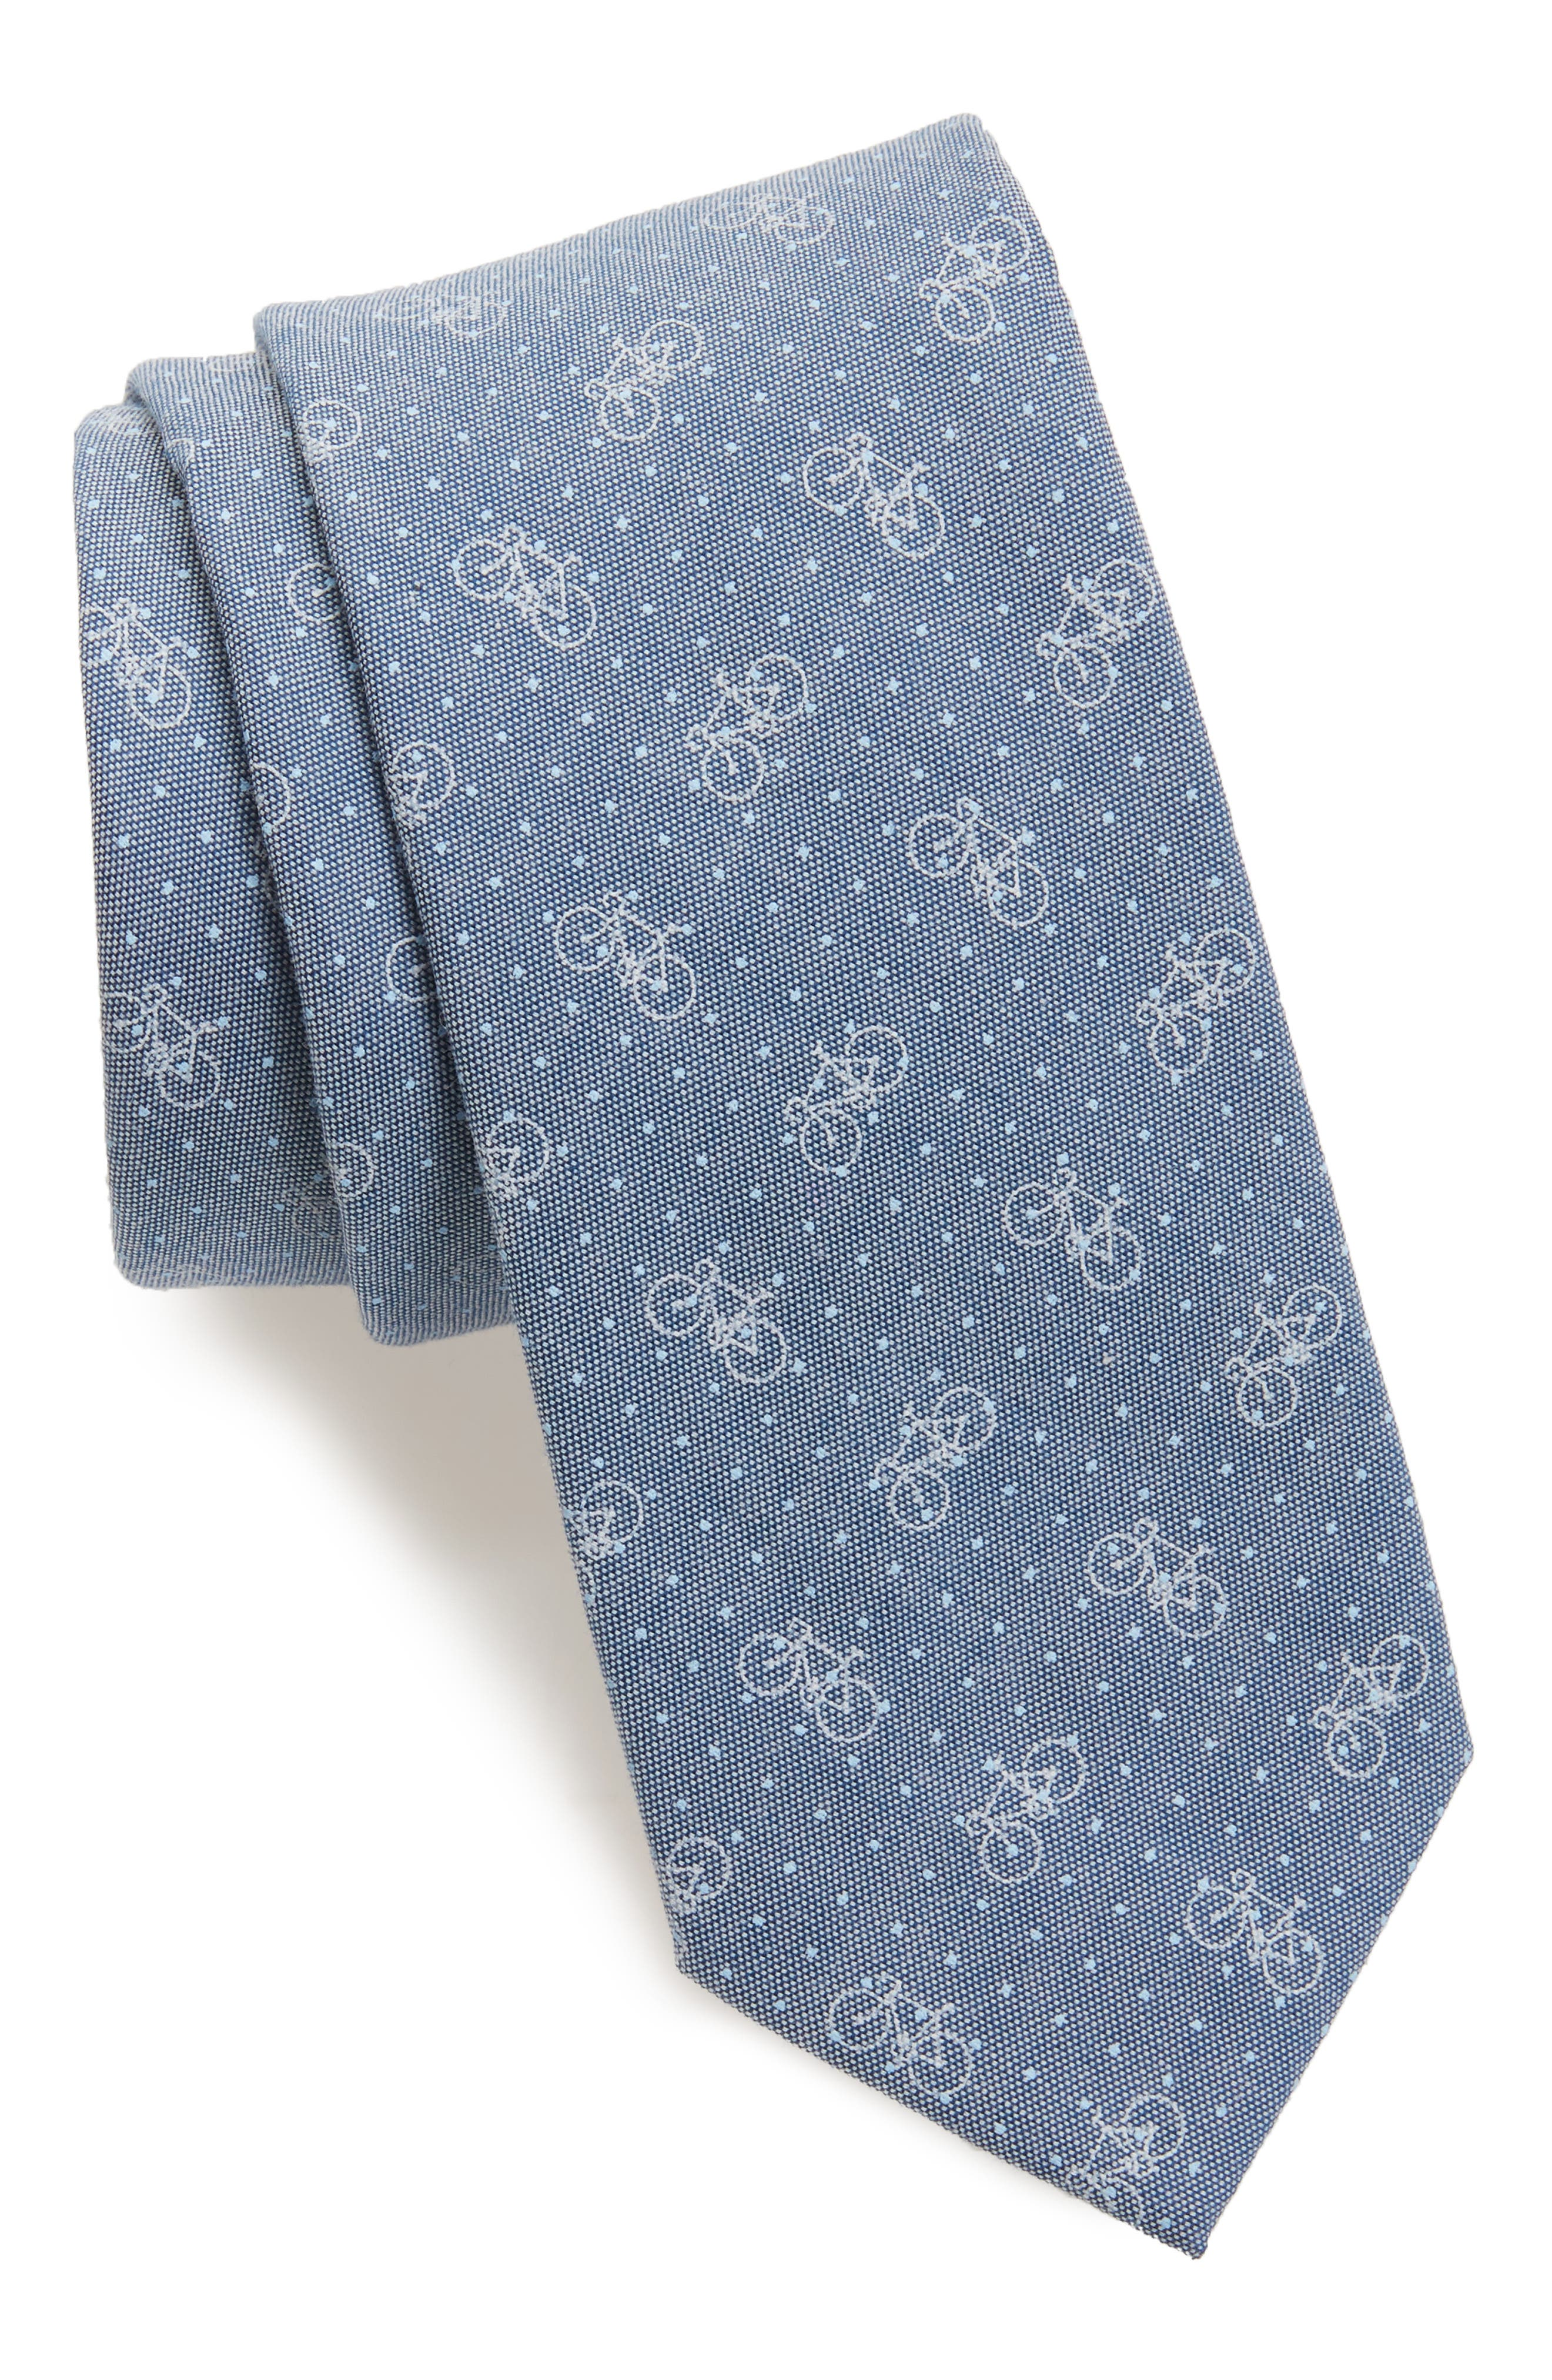 Bicycle & Dot Cotton Tie,                         Main,                         color, 400